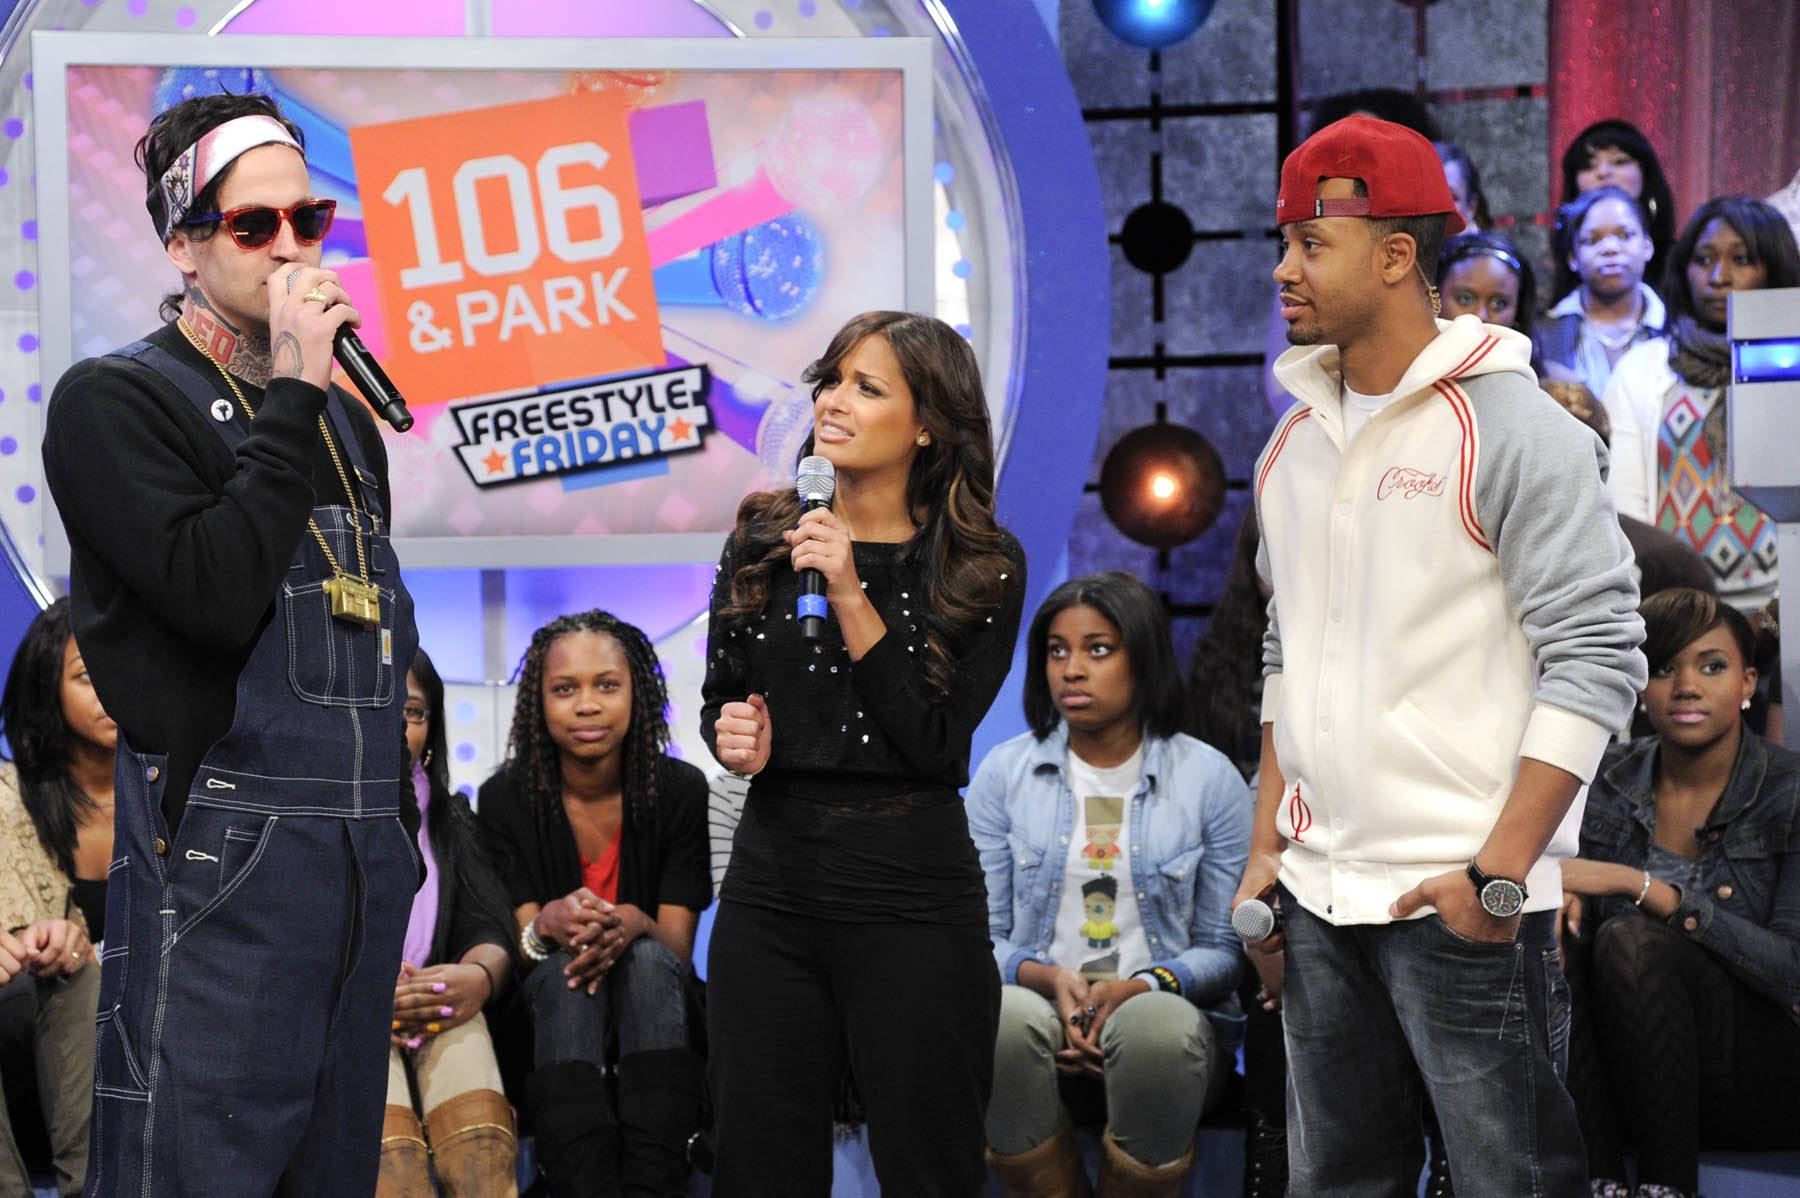 Let's Do This - Yelawolf with Rocsi Diaz and Terrence J at 106 & Park, January 27, 2012. (Photo: John Ricard / BET)